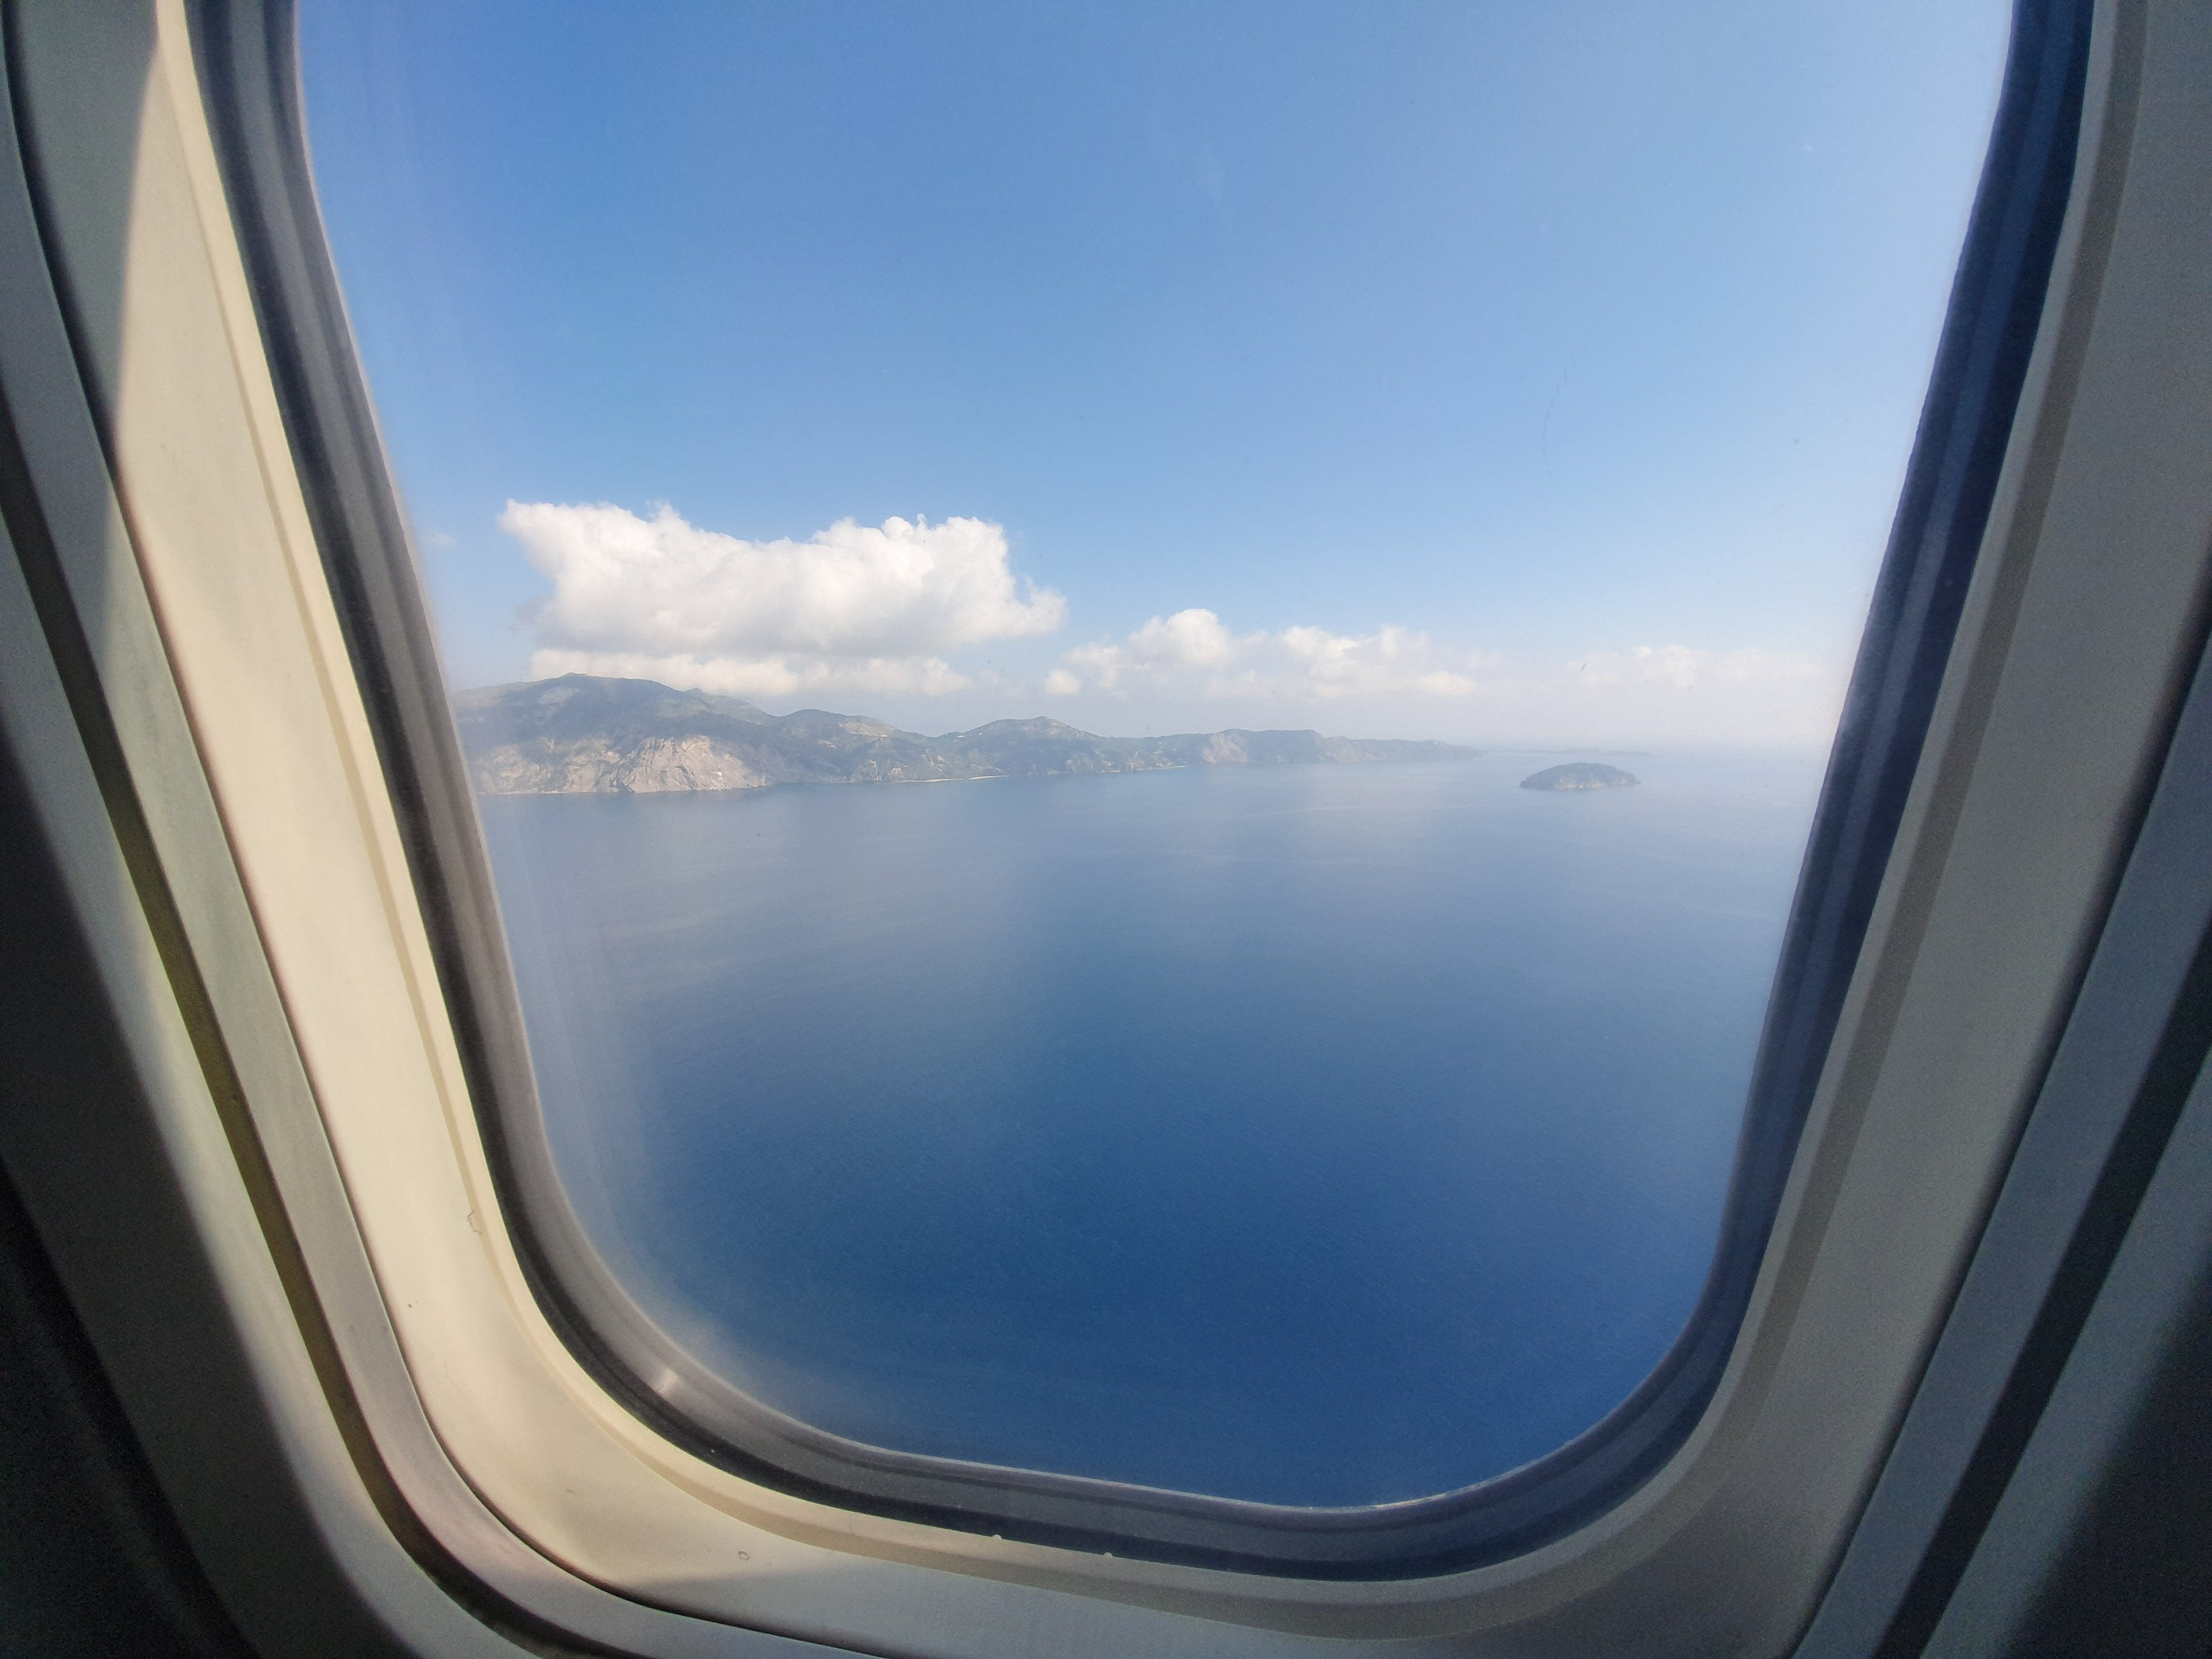 View from the aeroplane of zakynthos